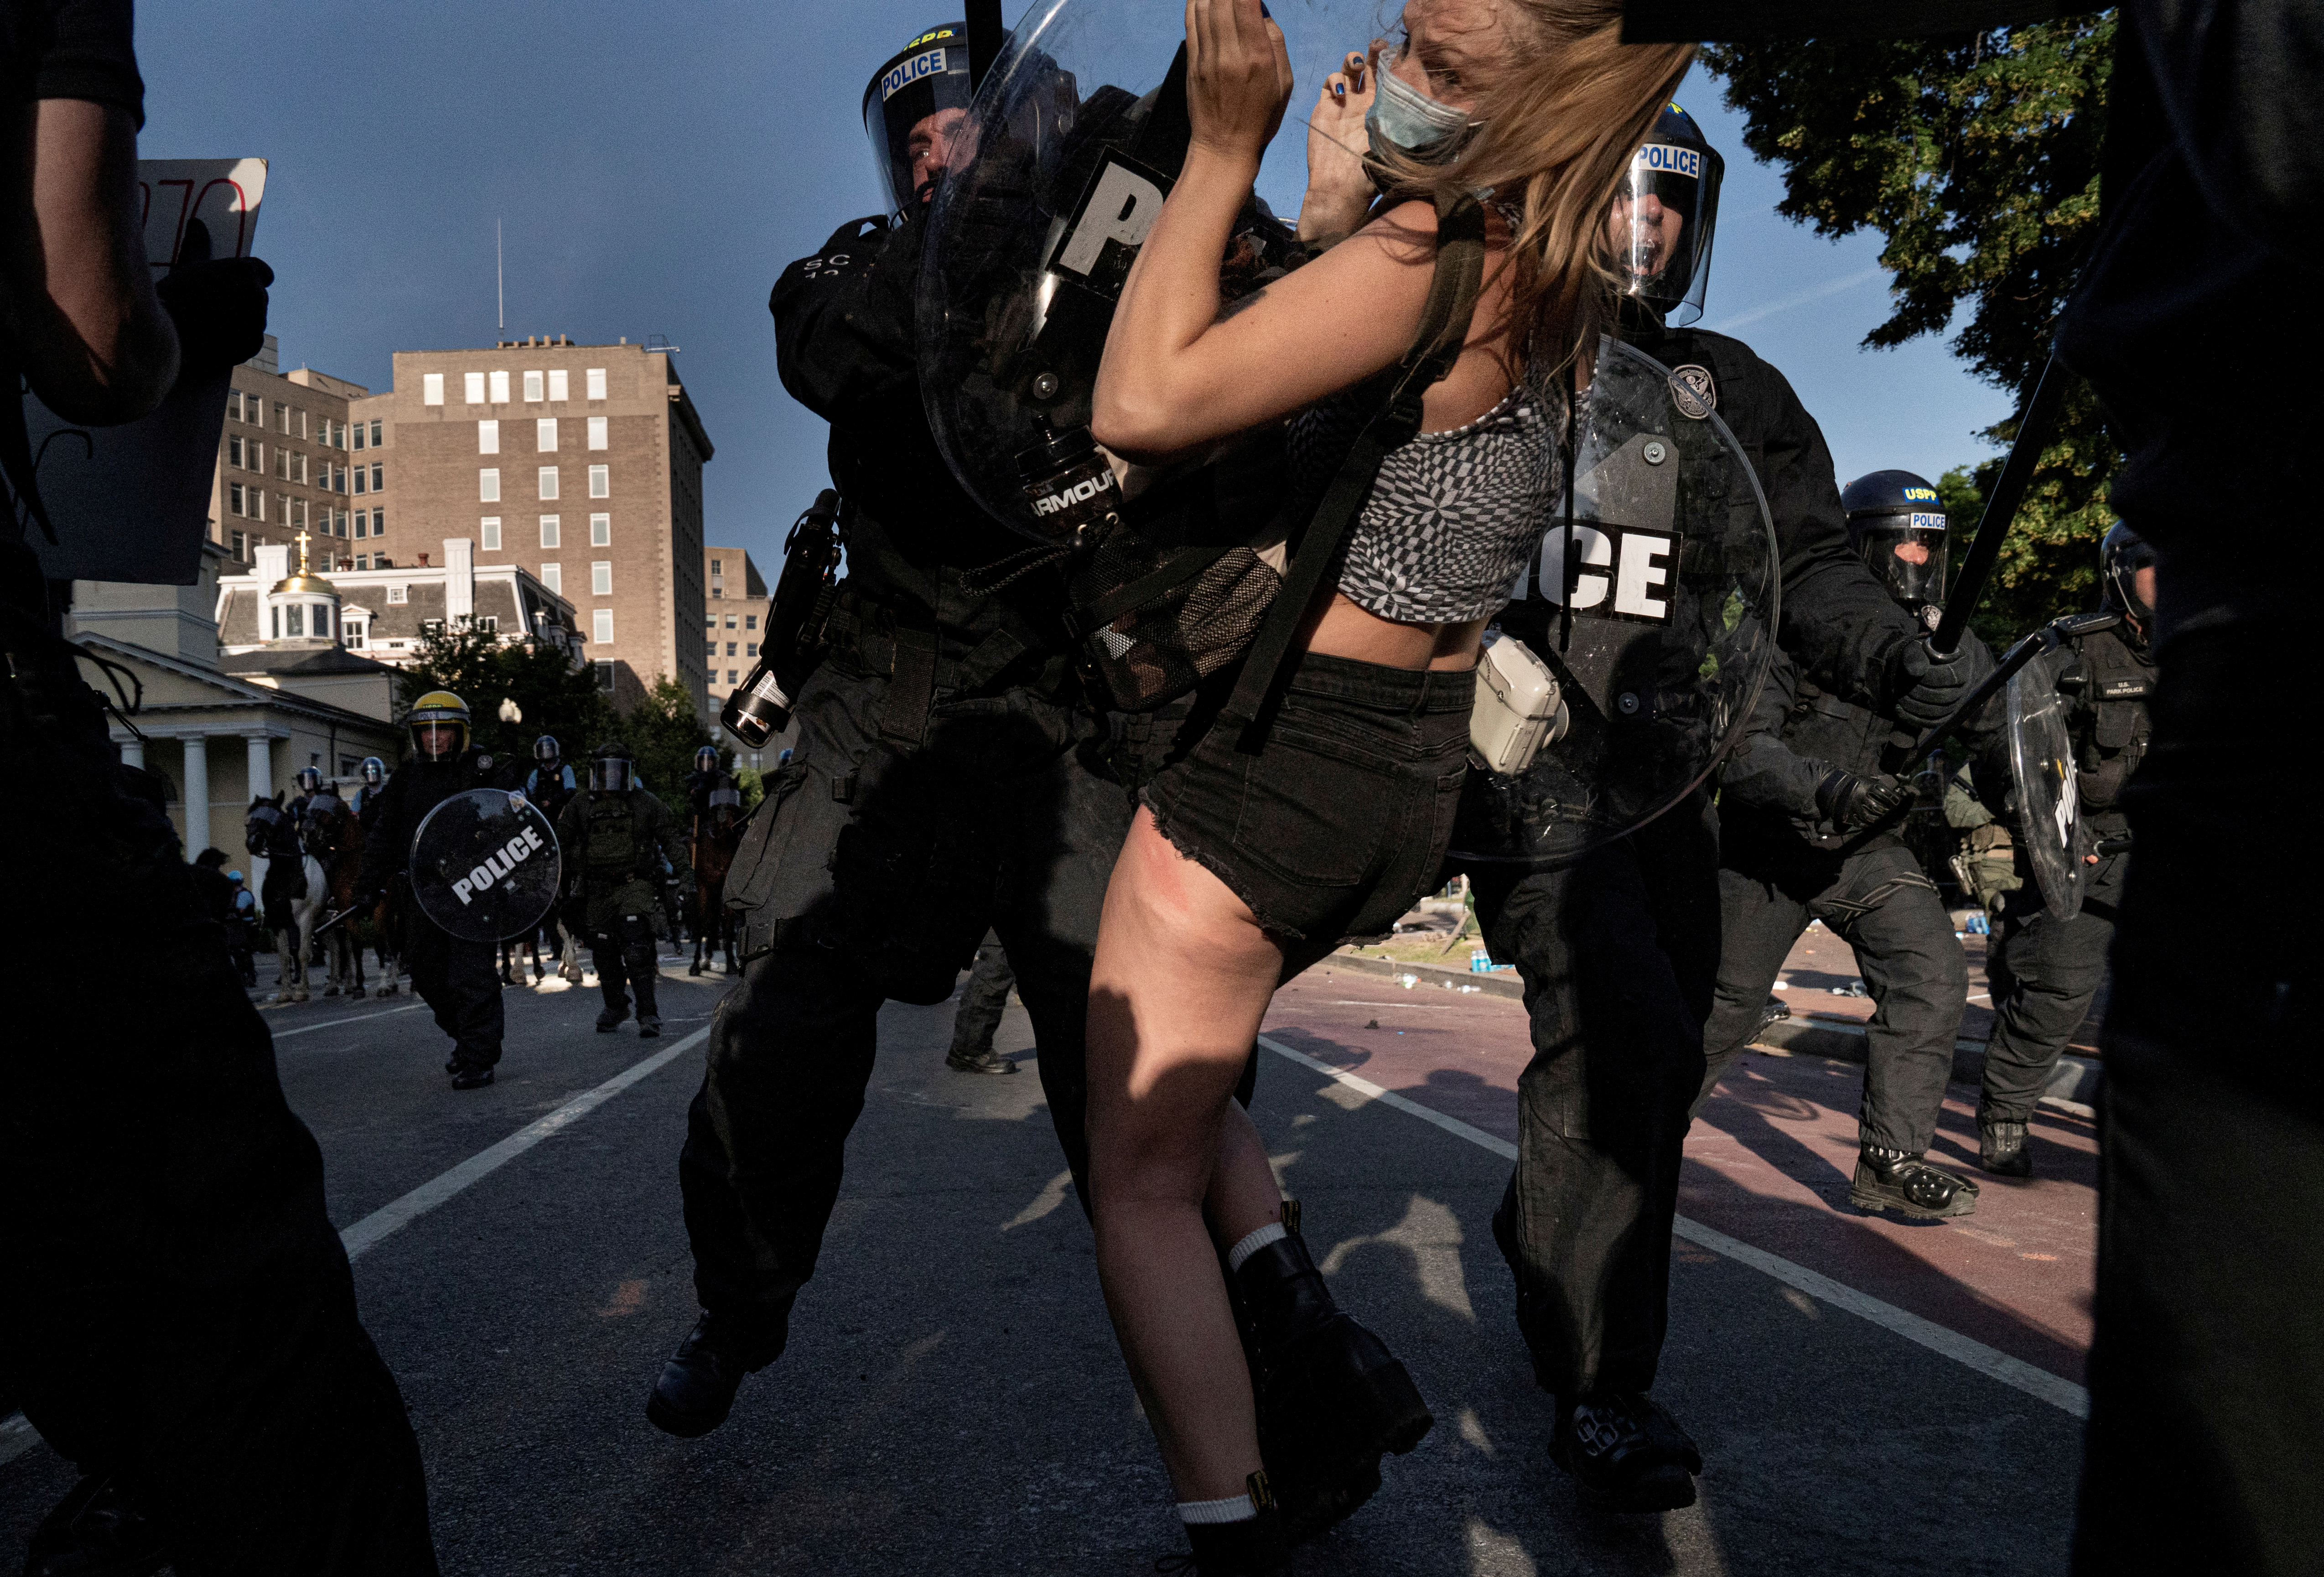 Riot police rush demonstrators as they clear Lafayette Park near the White House in Washington, D.C.